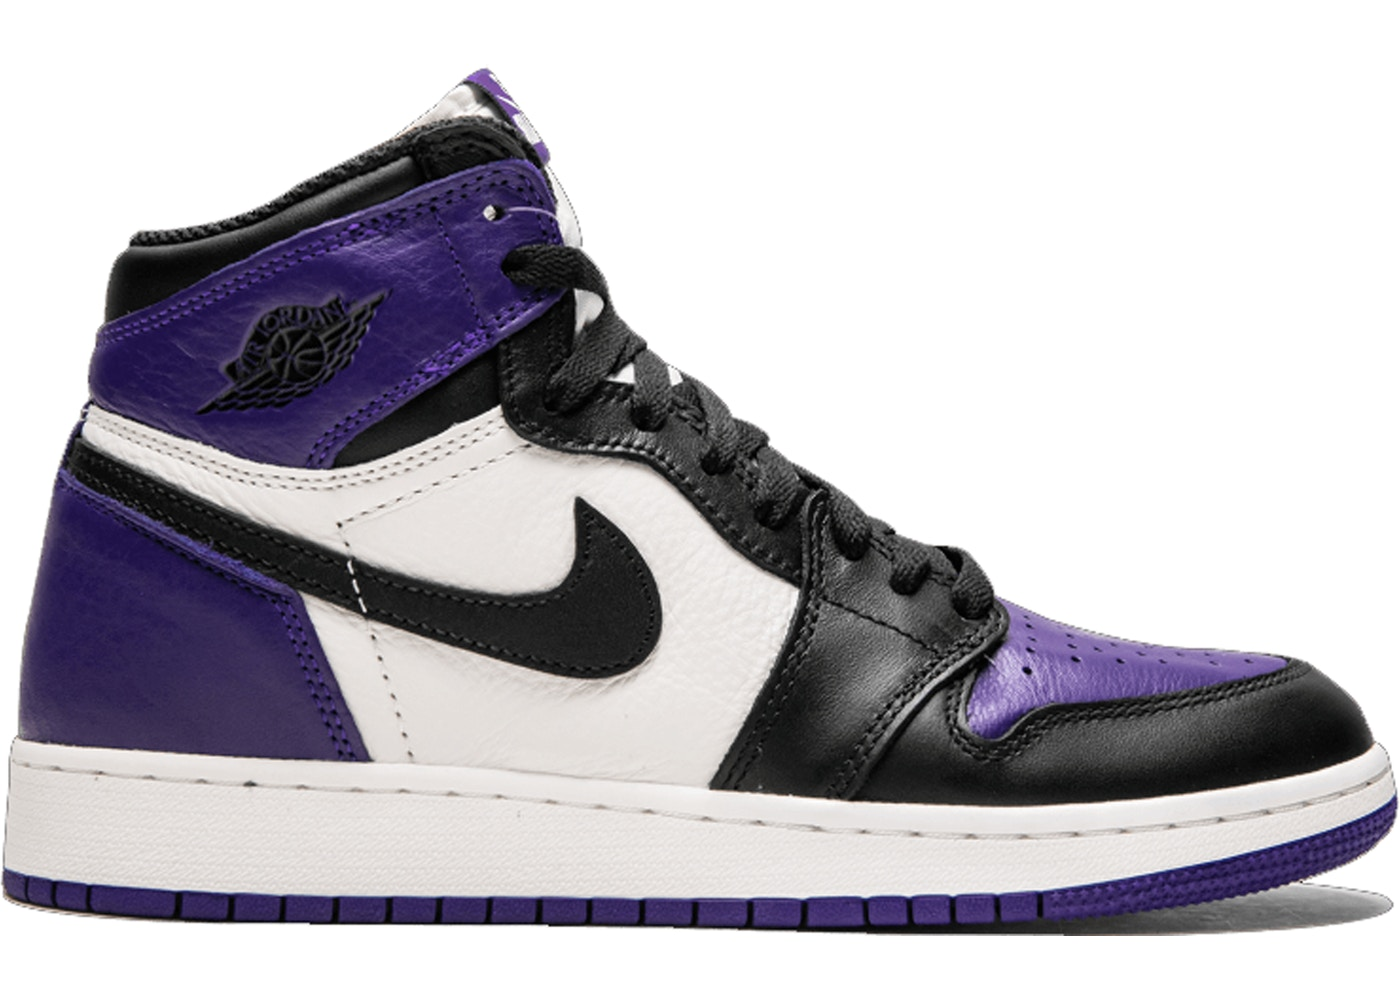 a6b100c7fff98e Jordan 1 Retro High Court Purple (GS)